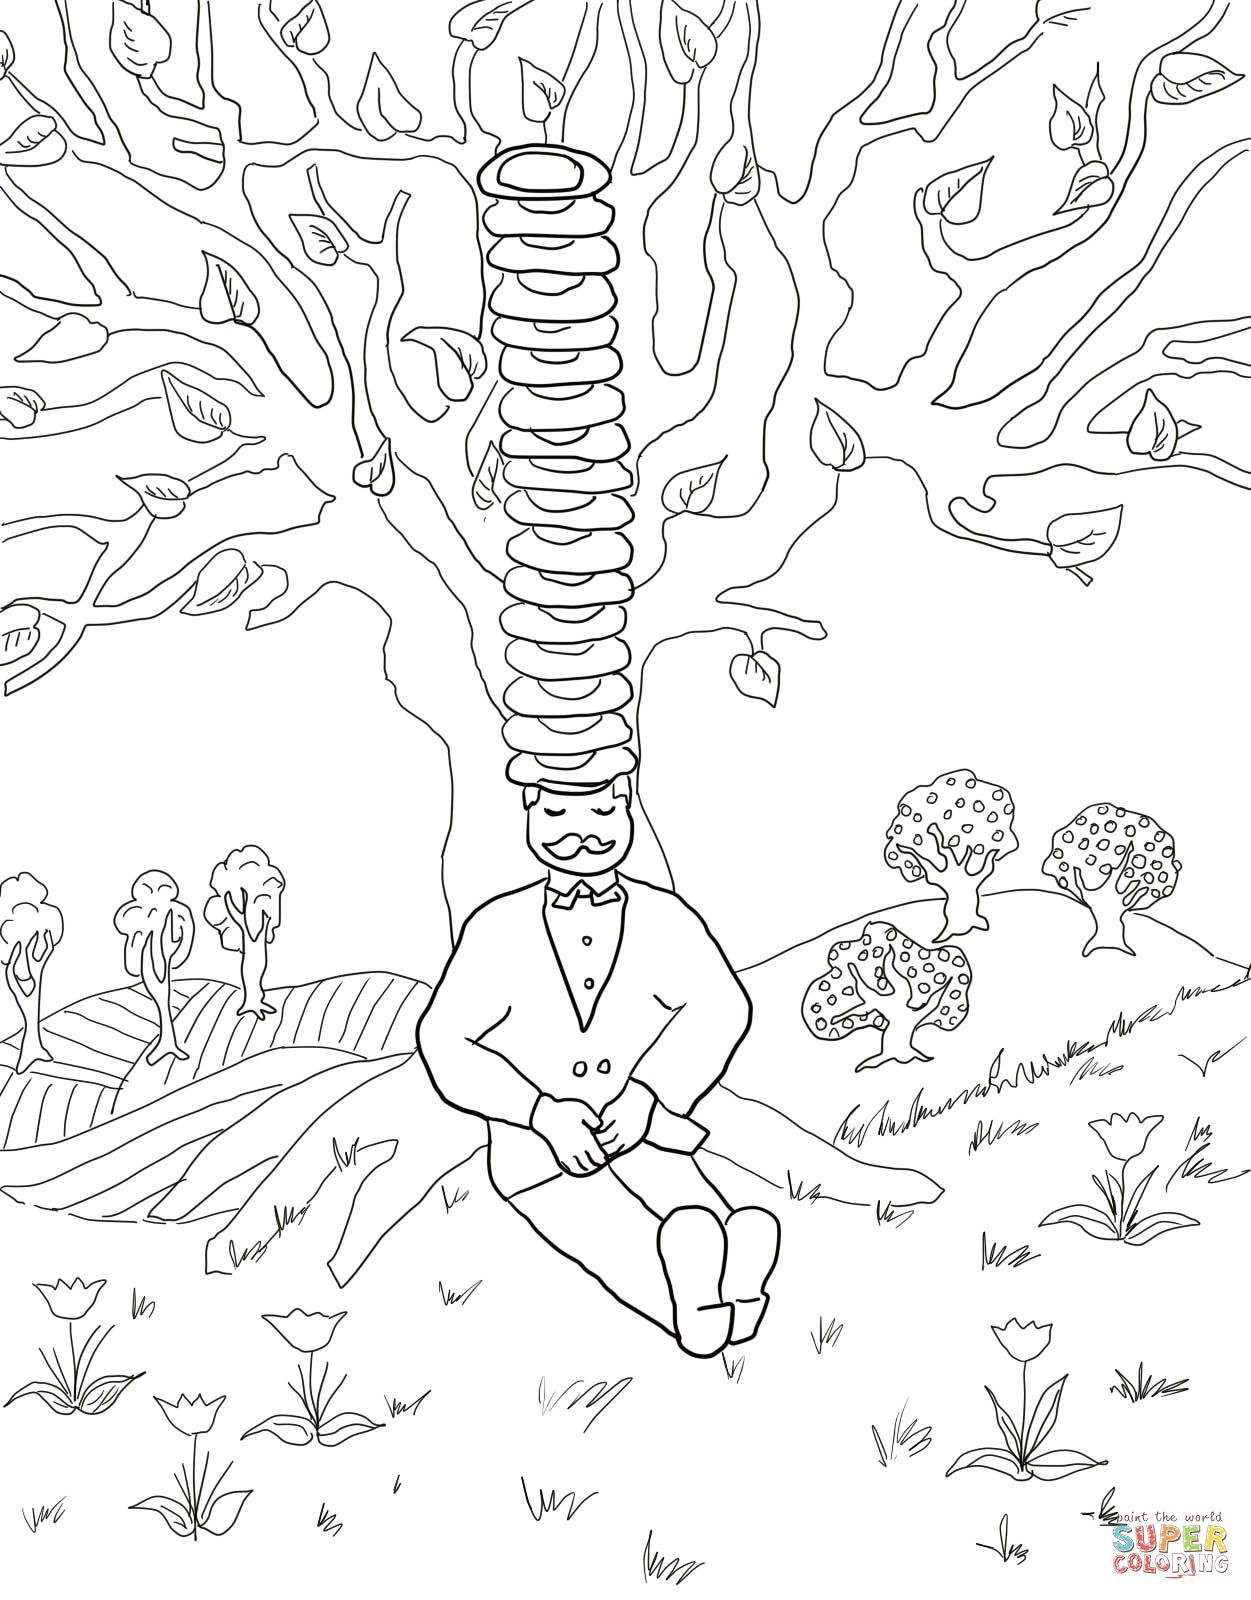 Cap S For Sale Colouring Pages